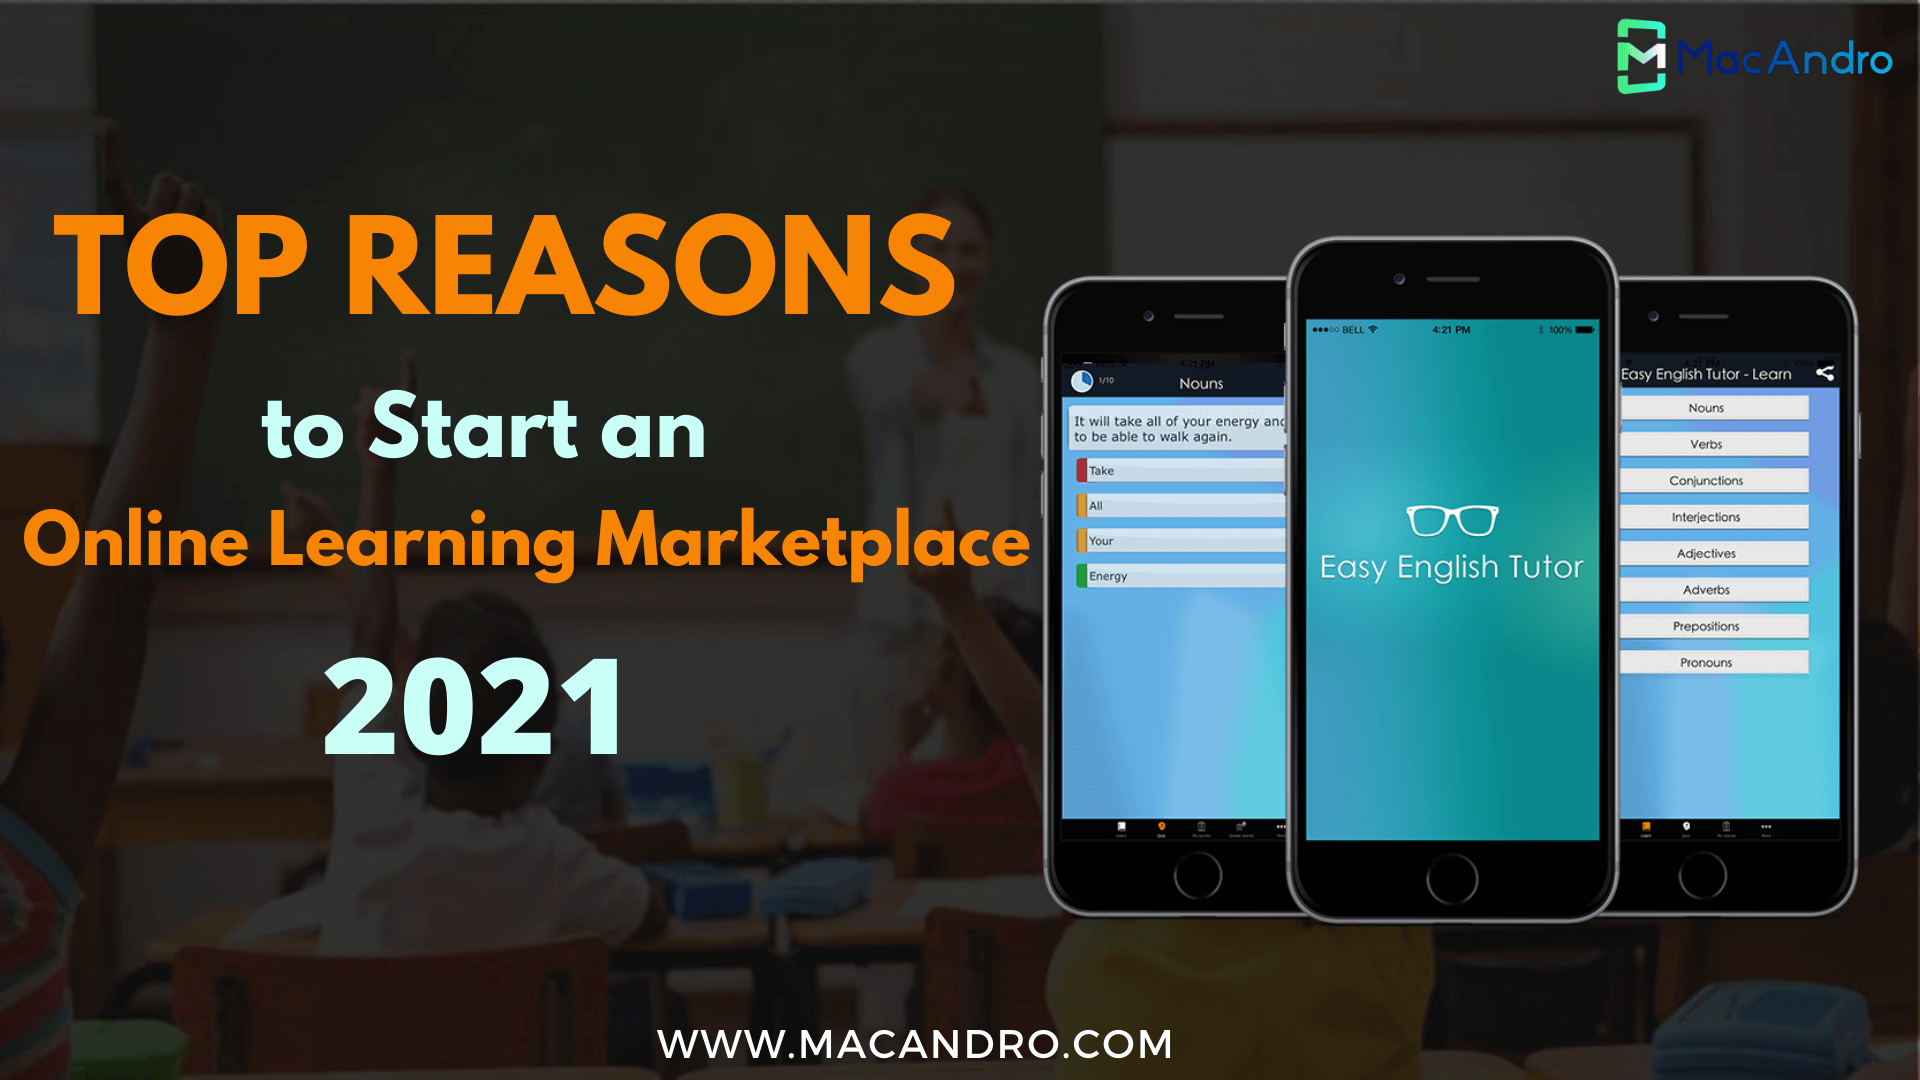 Why Should You Build an Online Learning Marketplace in 2021?